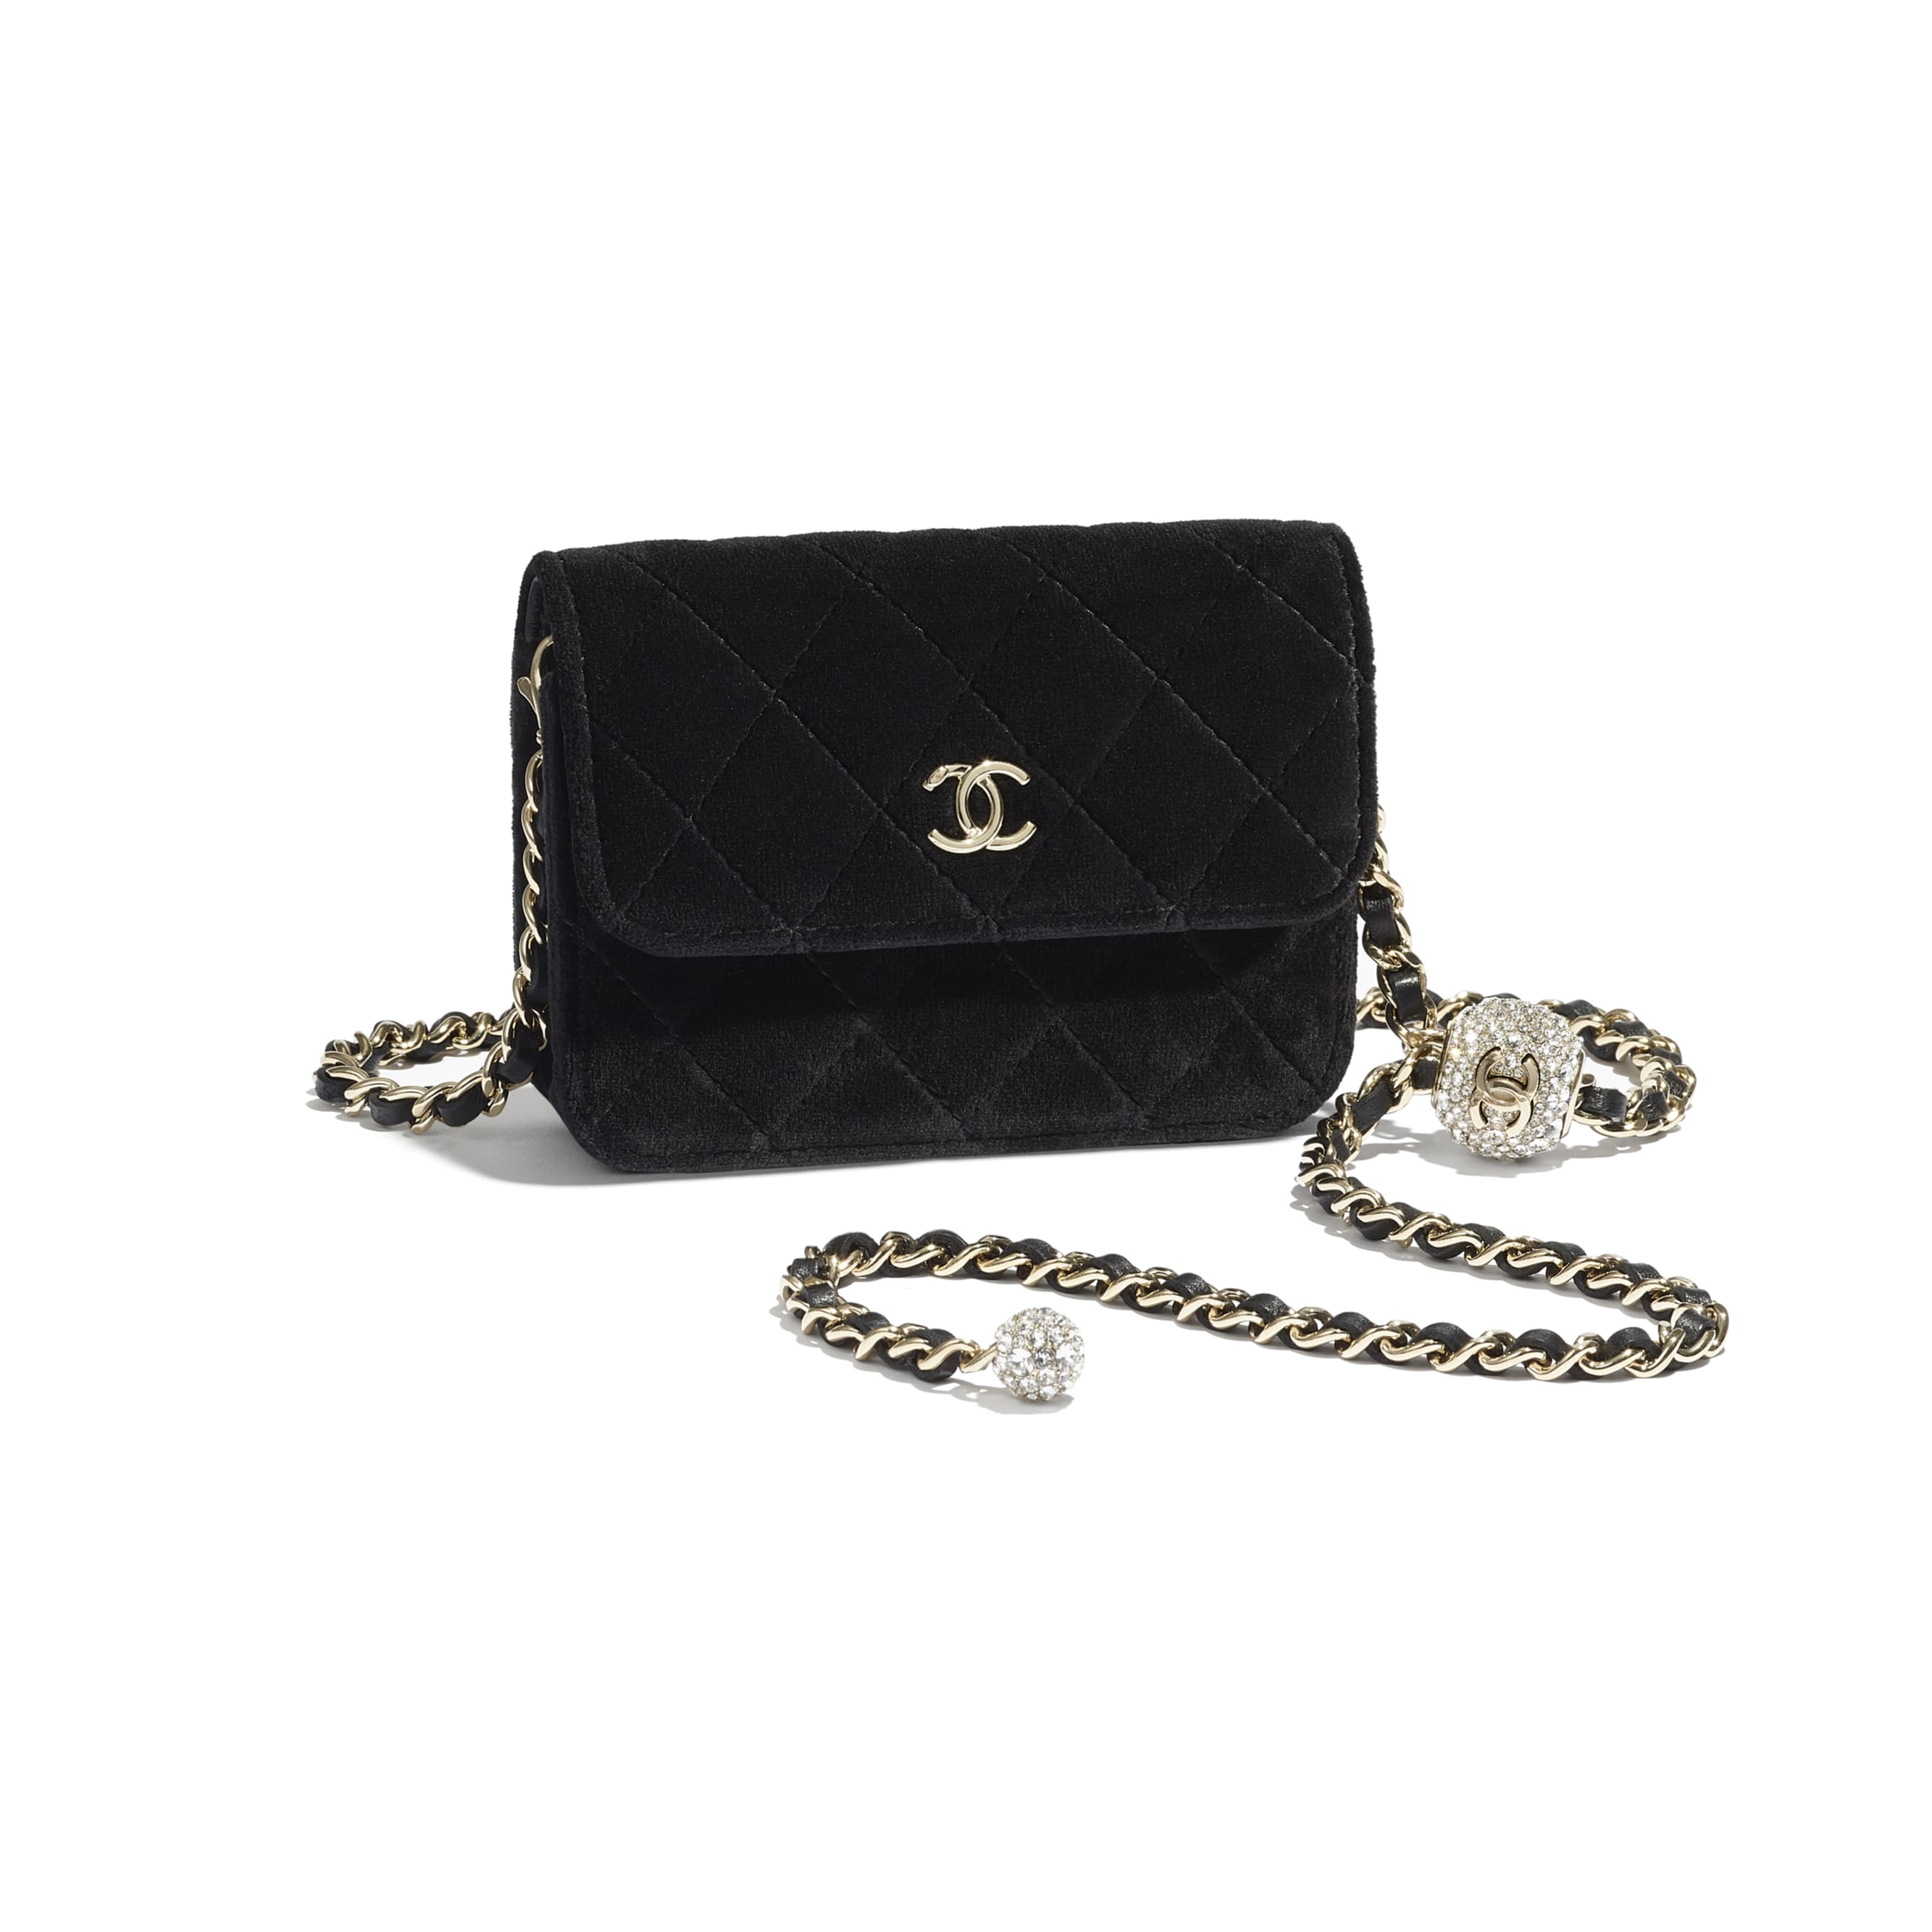 Clutch with Chain - Black - Velvet, Strass & Gold-Tone Metal - CHANEL - Extra view - see standard sized version